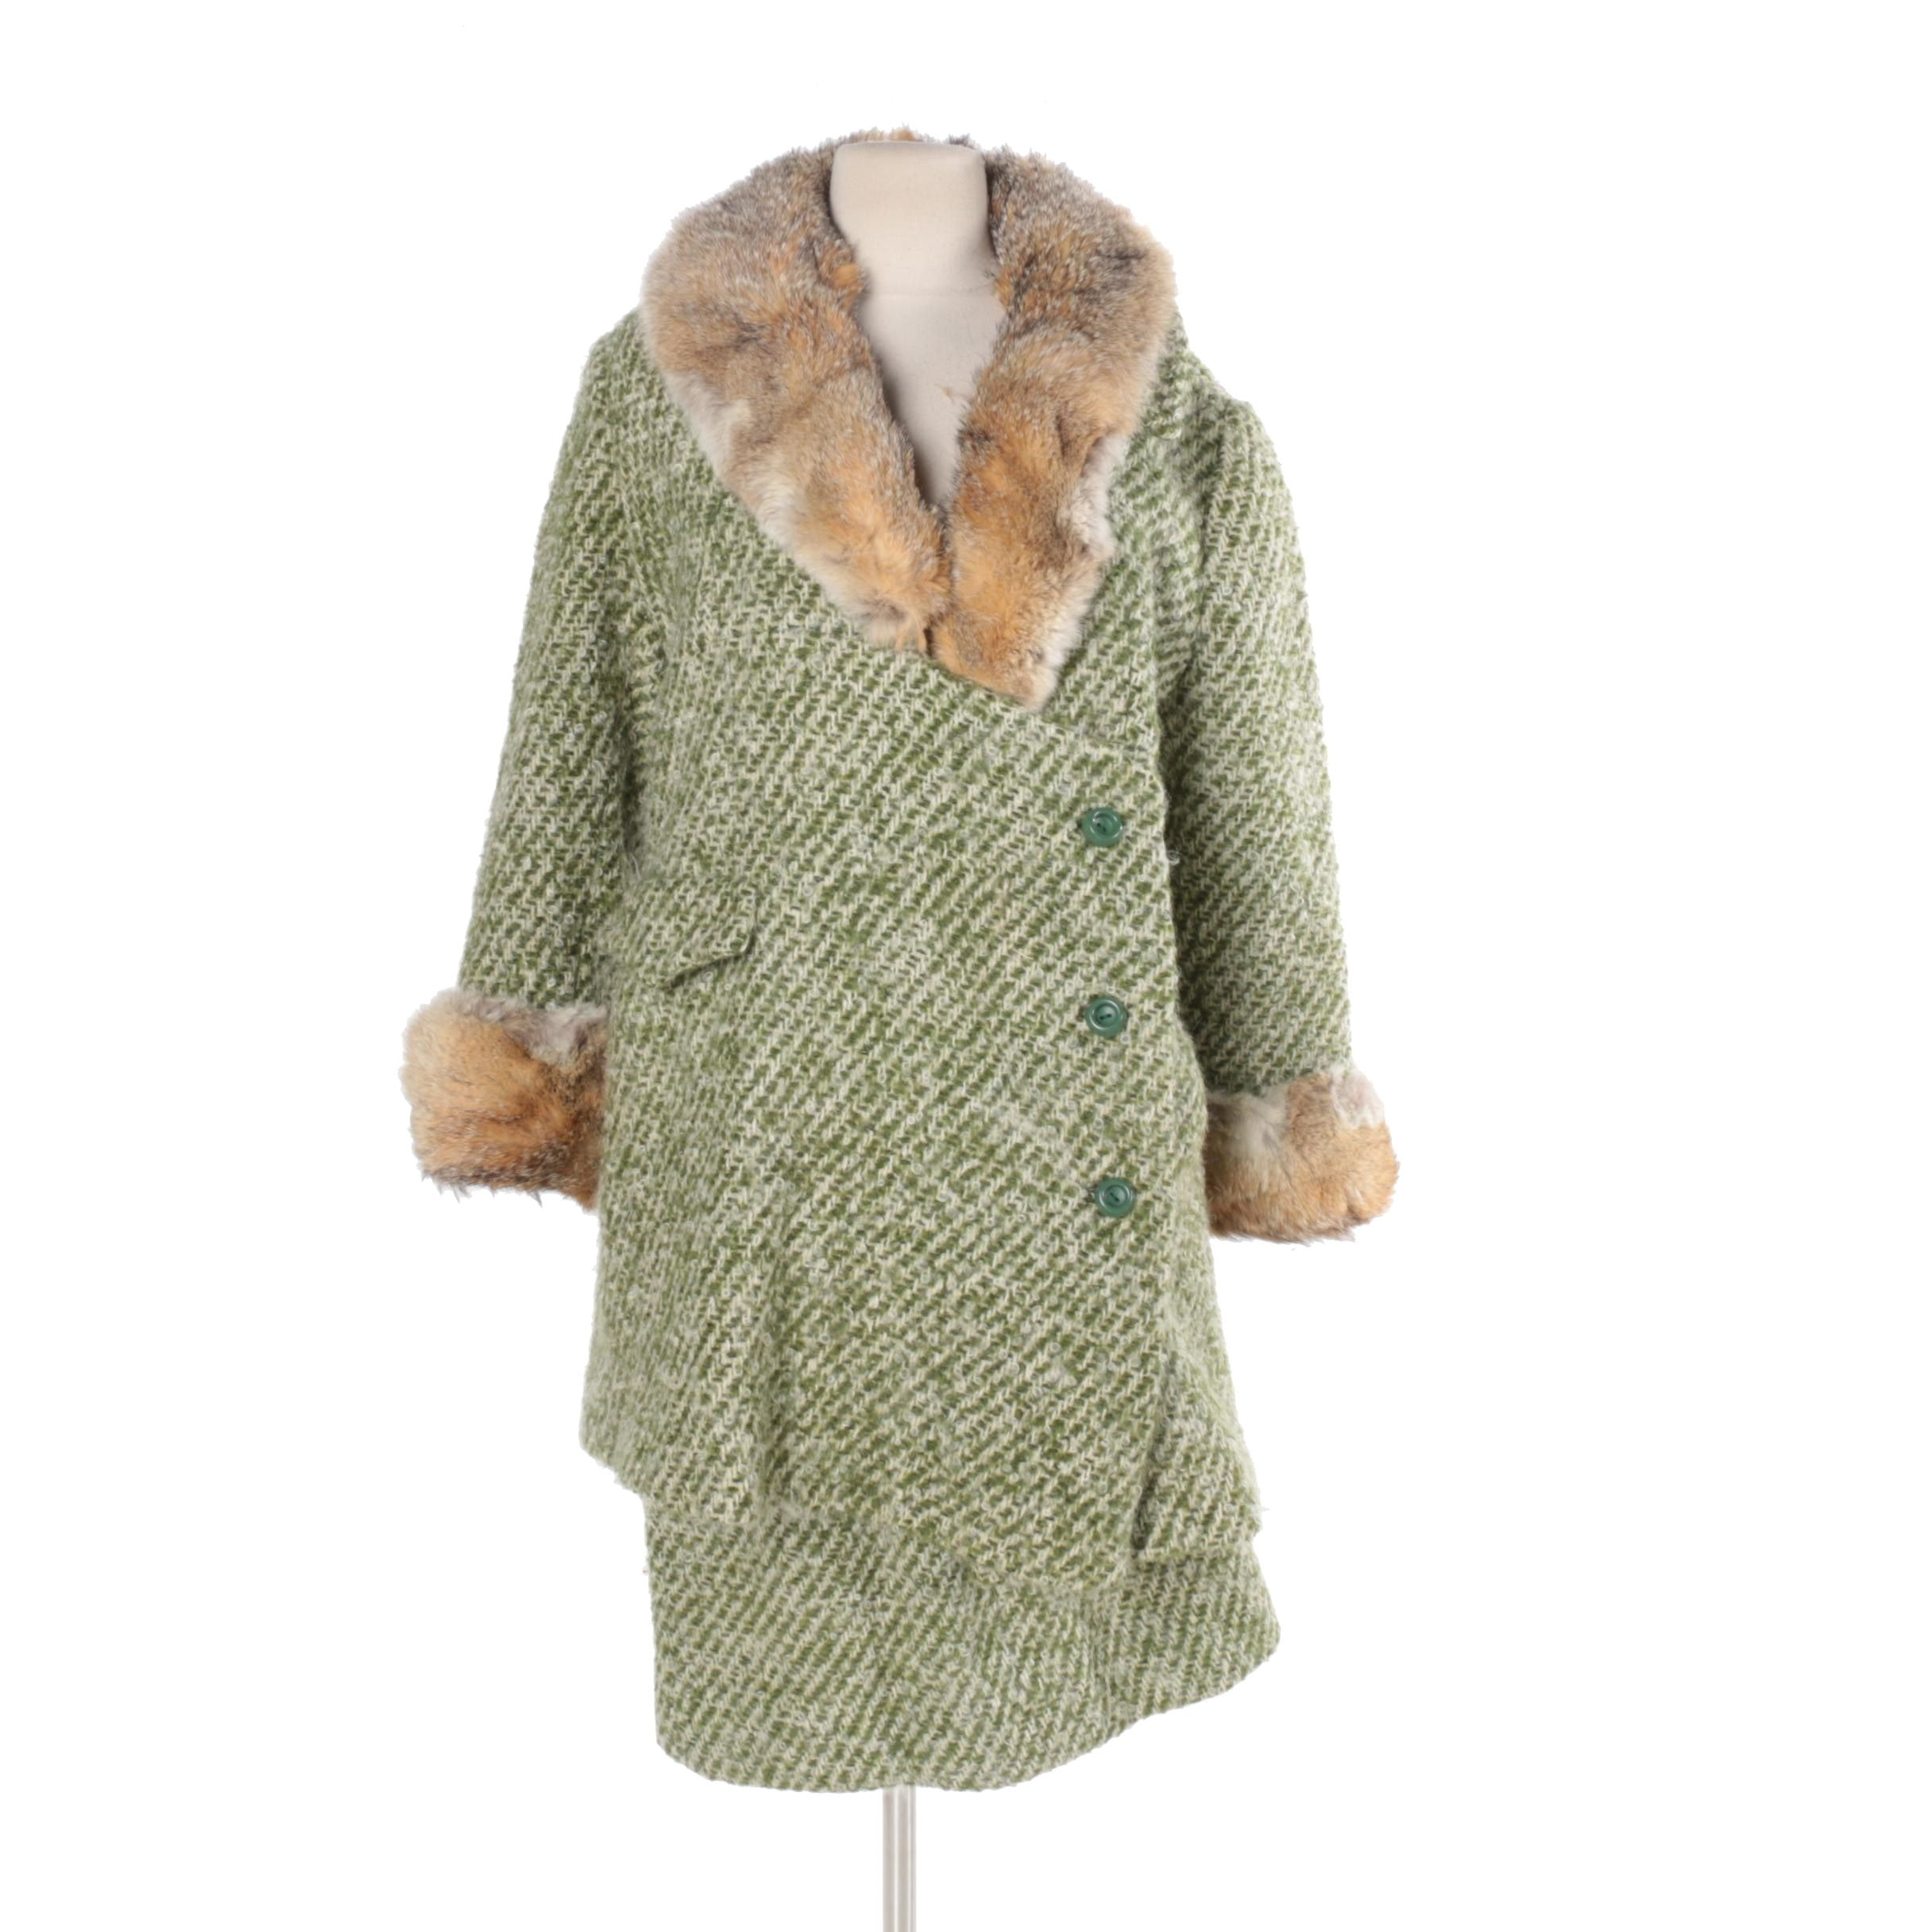 Vintage Green Wool Coat with Rabbit Fur Trim and Skirt